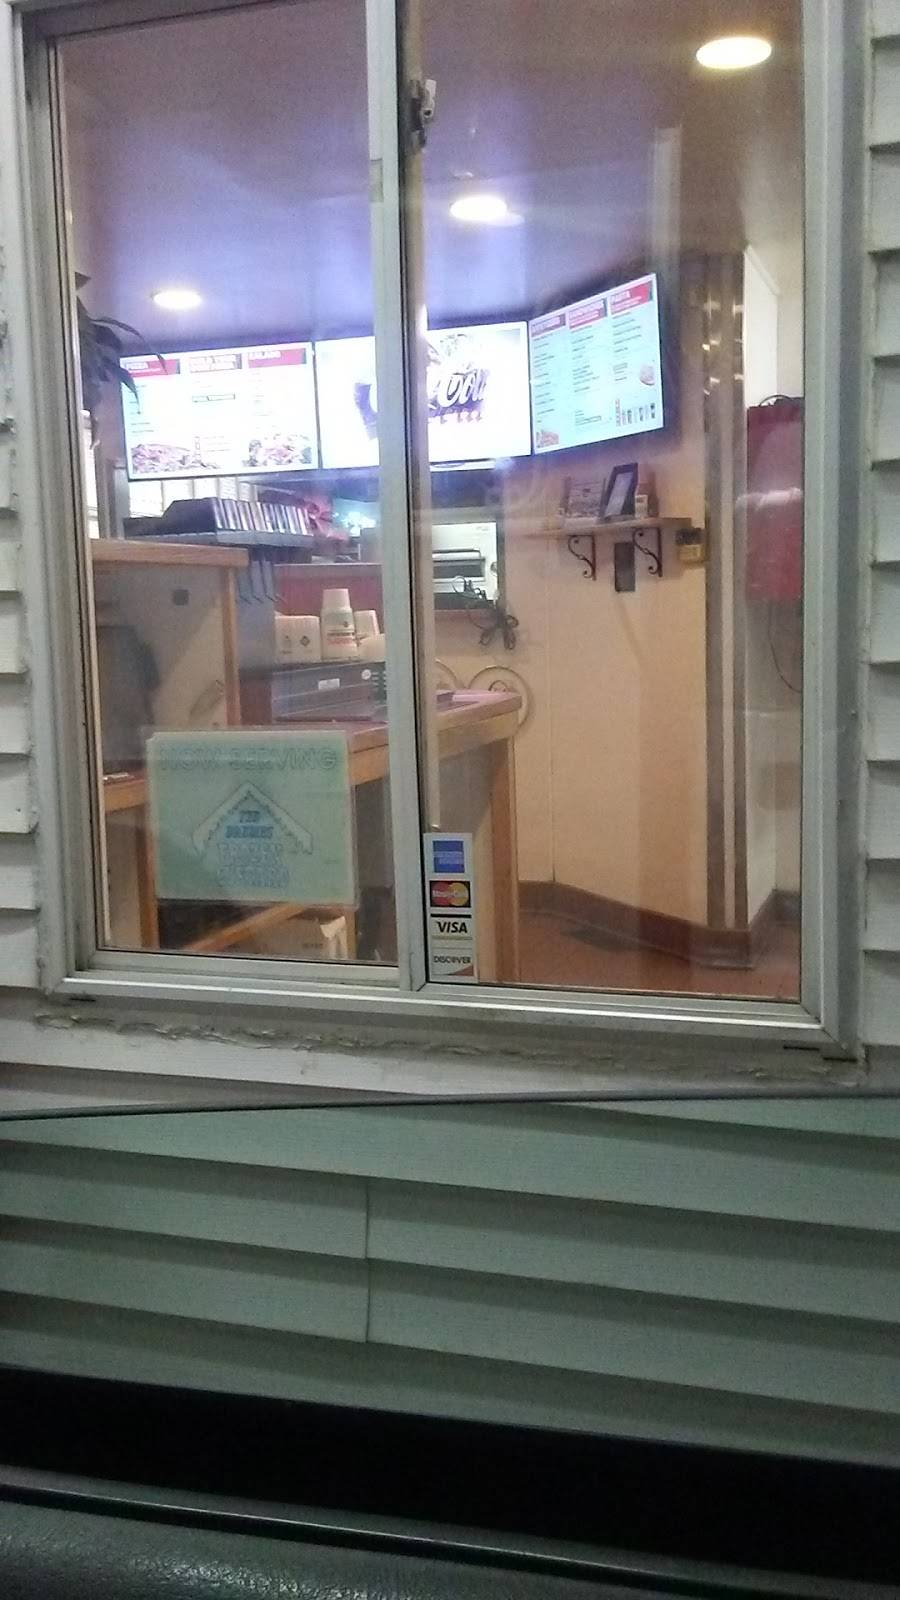 Imos Pizza - meal delivery  | Photo 8 of 8 | Address: 133 Fiedler Ln, Fenton, MO 63026, USA | Phone: (636) 349-3399